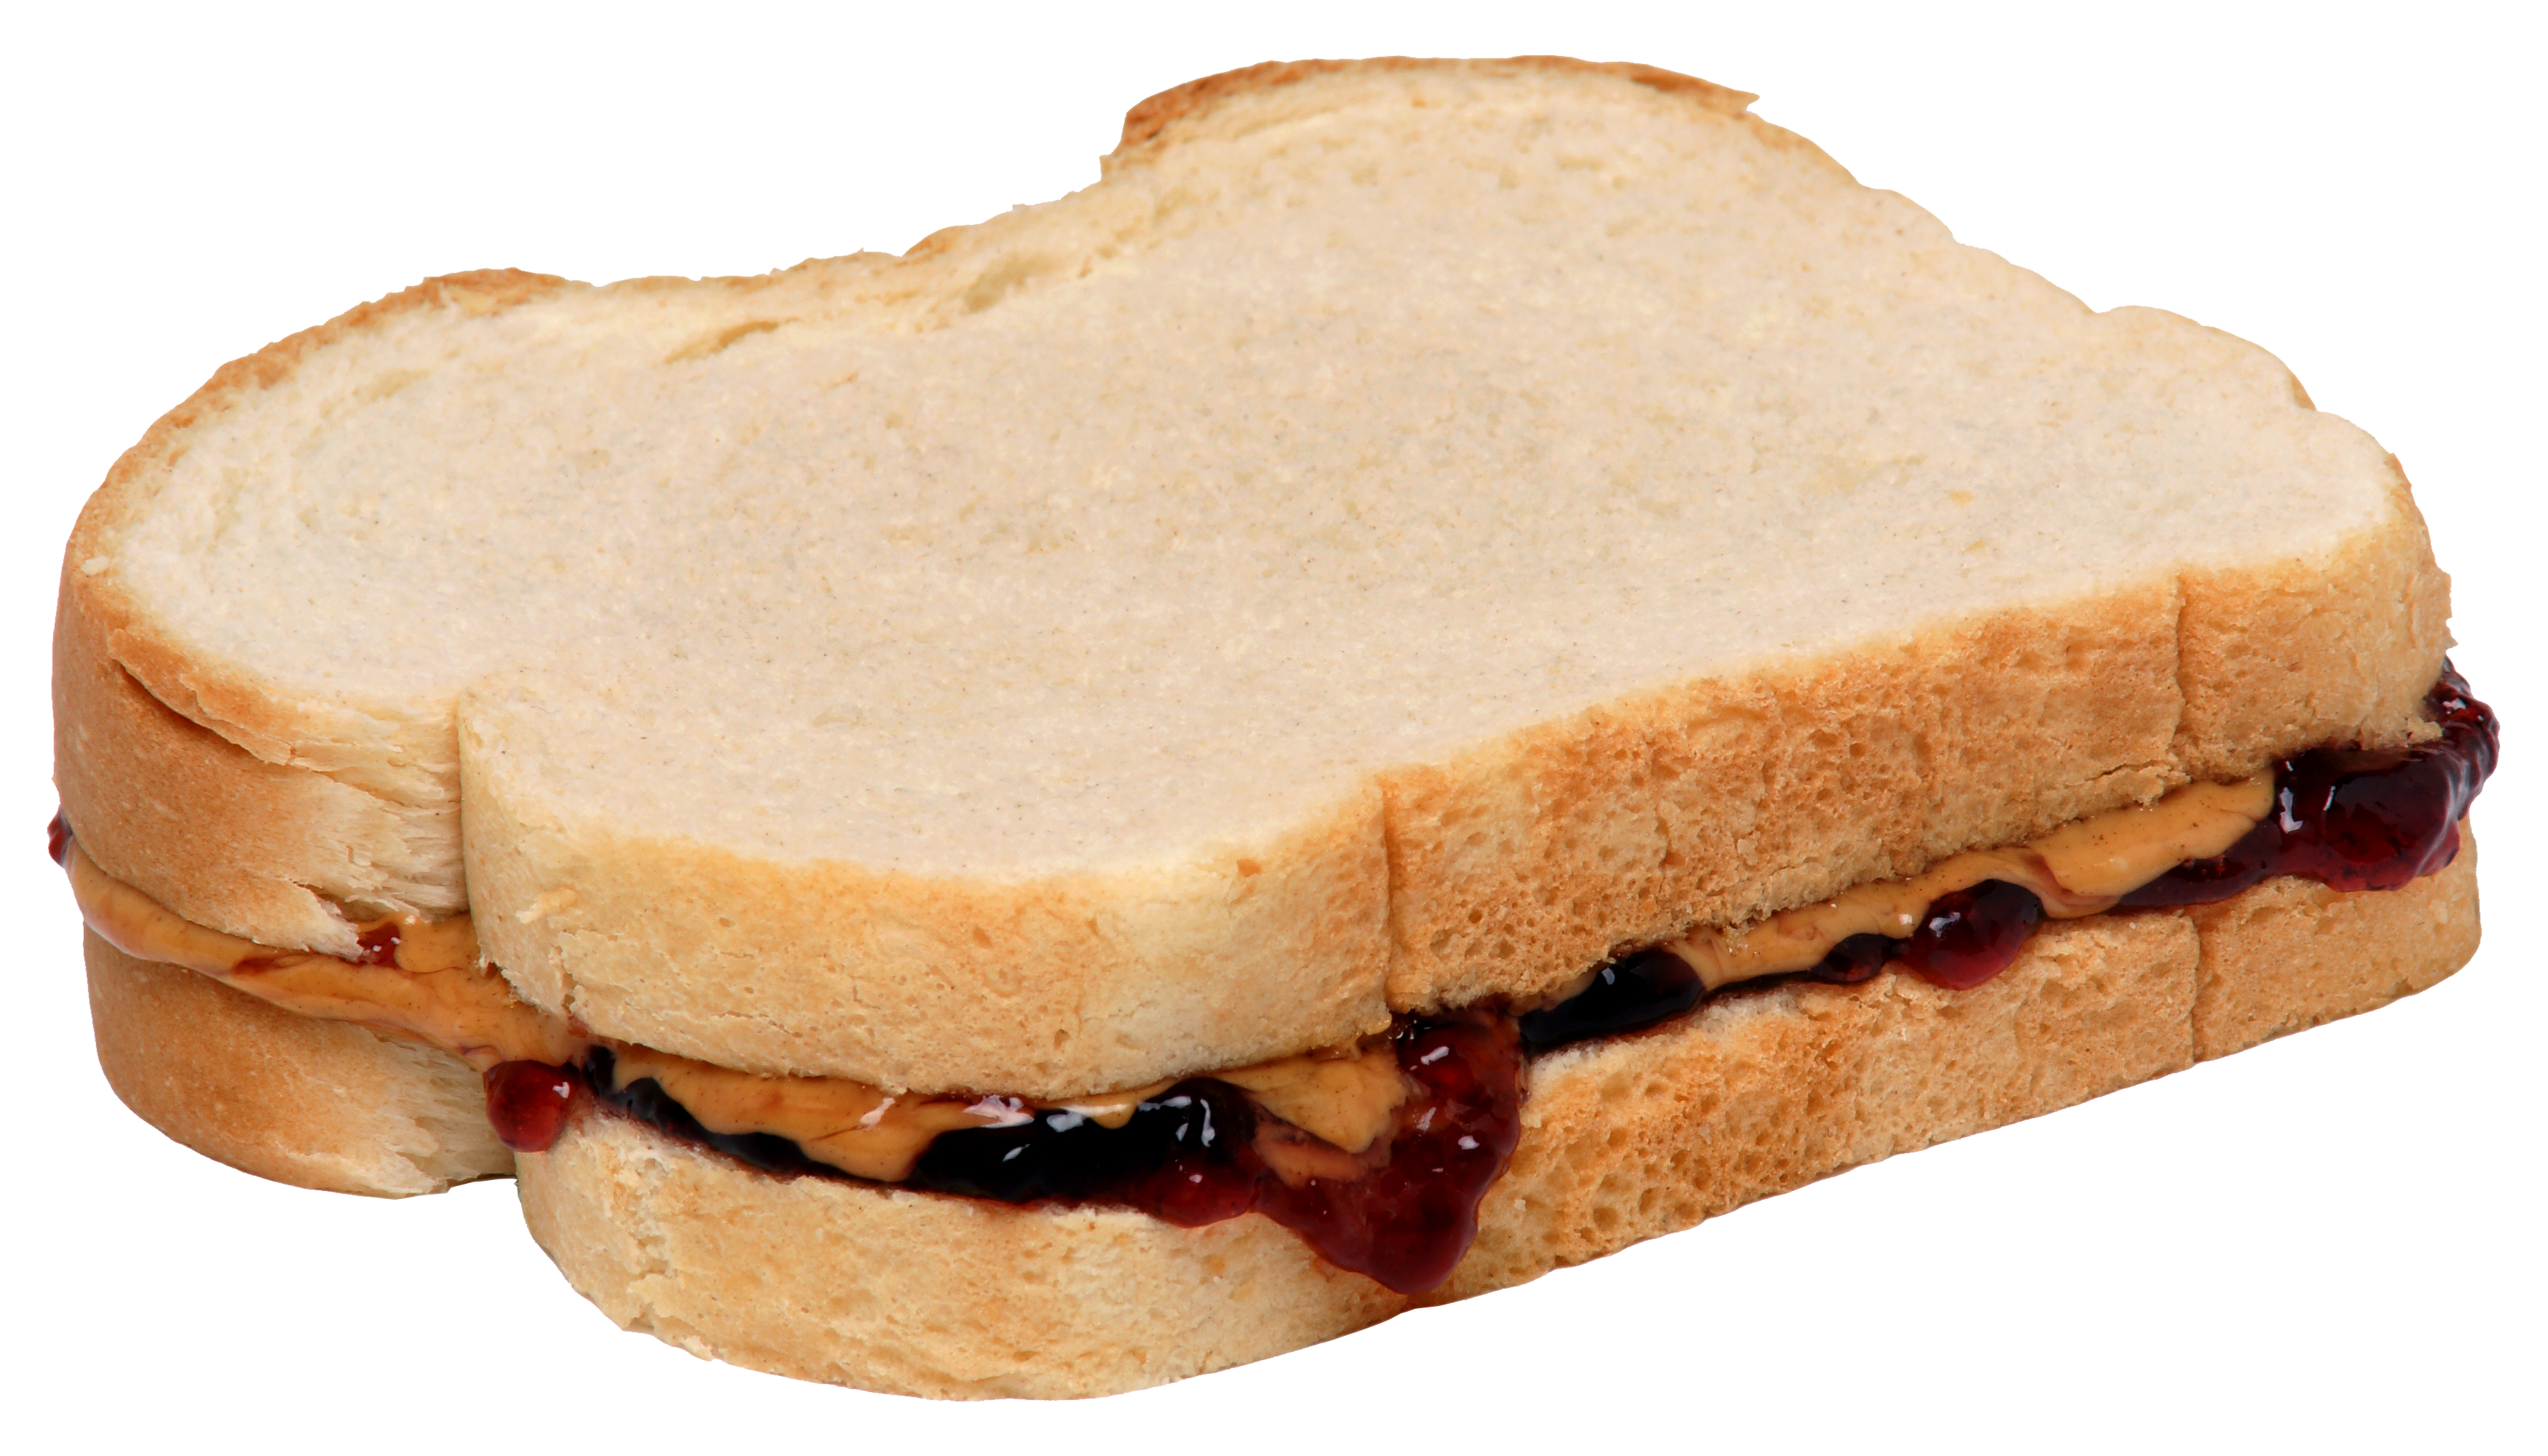 Pb&j sandwich clipart image library stock Cartoon peanut butter and jelly sandwich clipart images ... image library stock